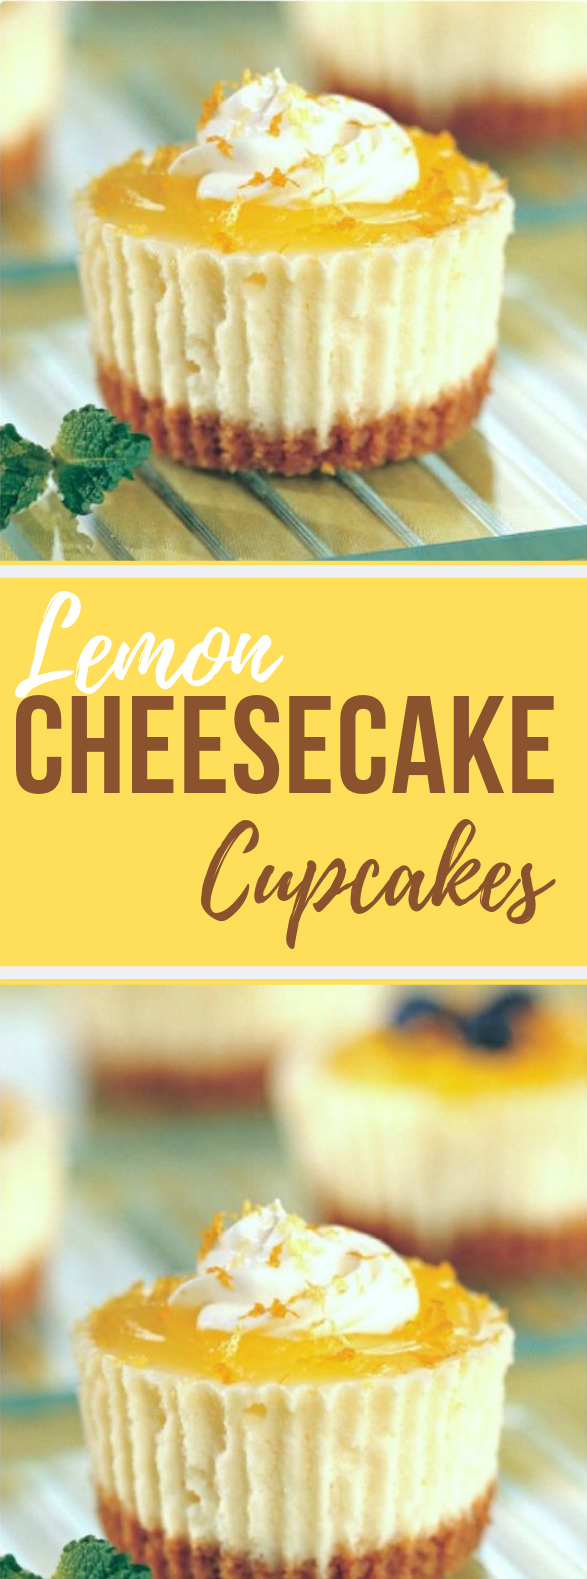 Lemon Cheesecake Cupcakes #Cupcake #Lemon